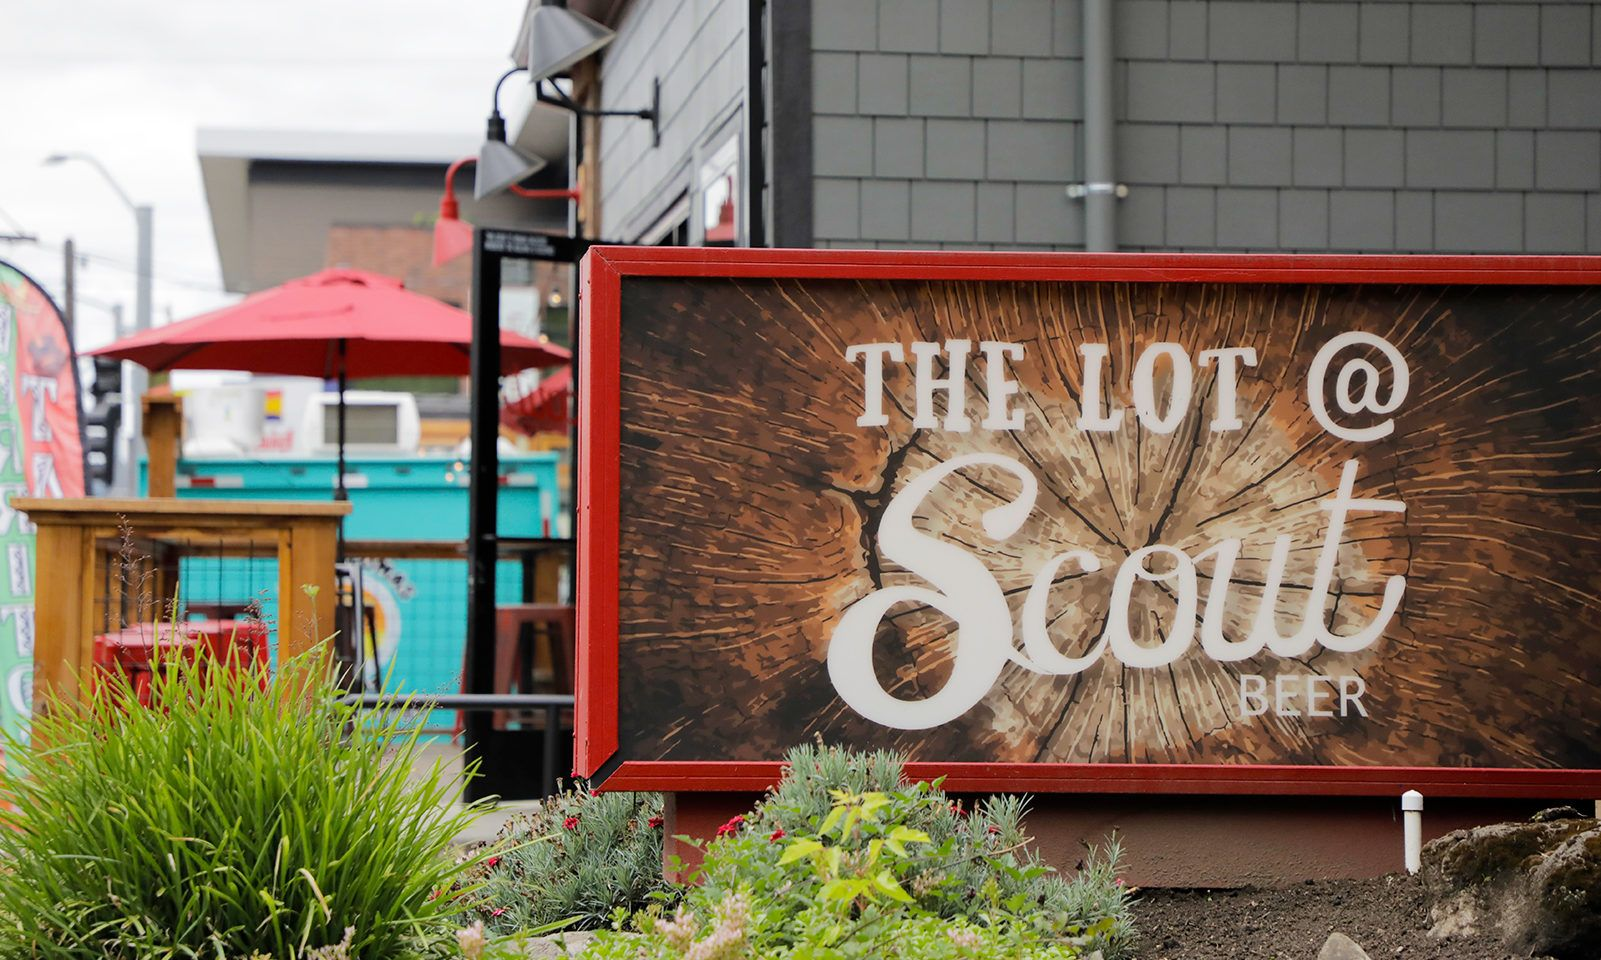 When hunter or thirst strikes, head to The Lot at Scout Beer in Southeast Portland, where multiple food carts share space with a beer taproom.